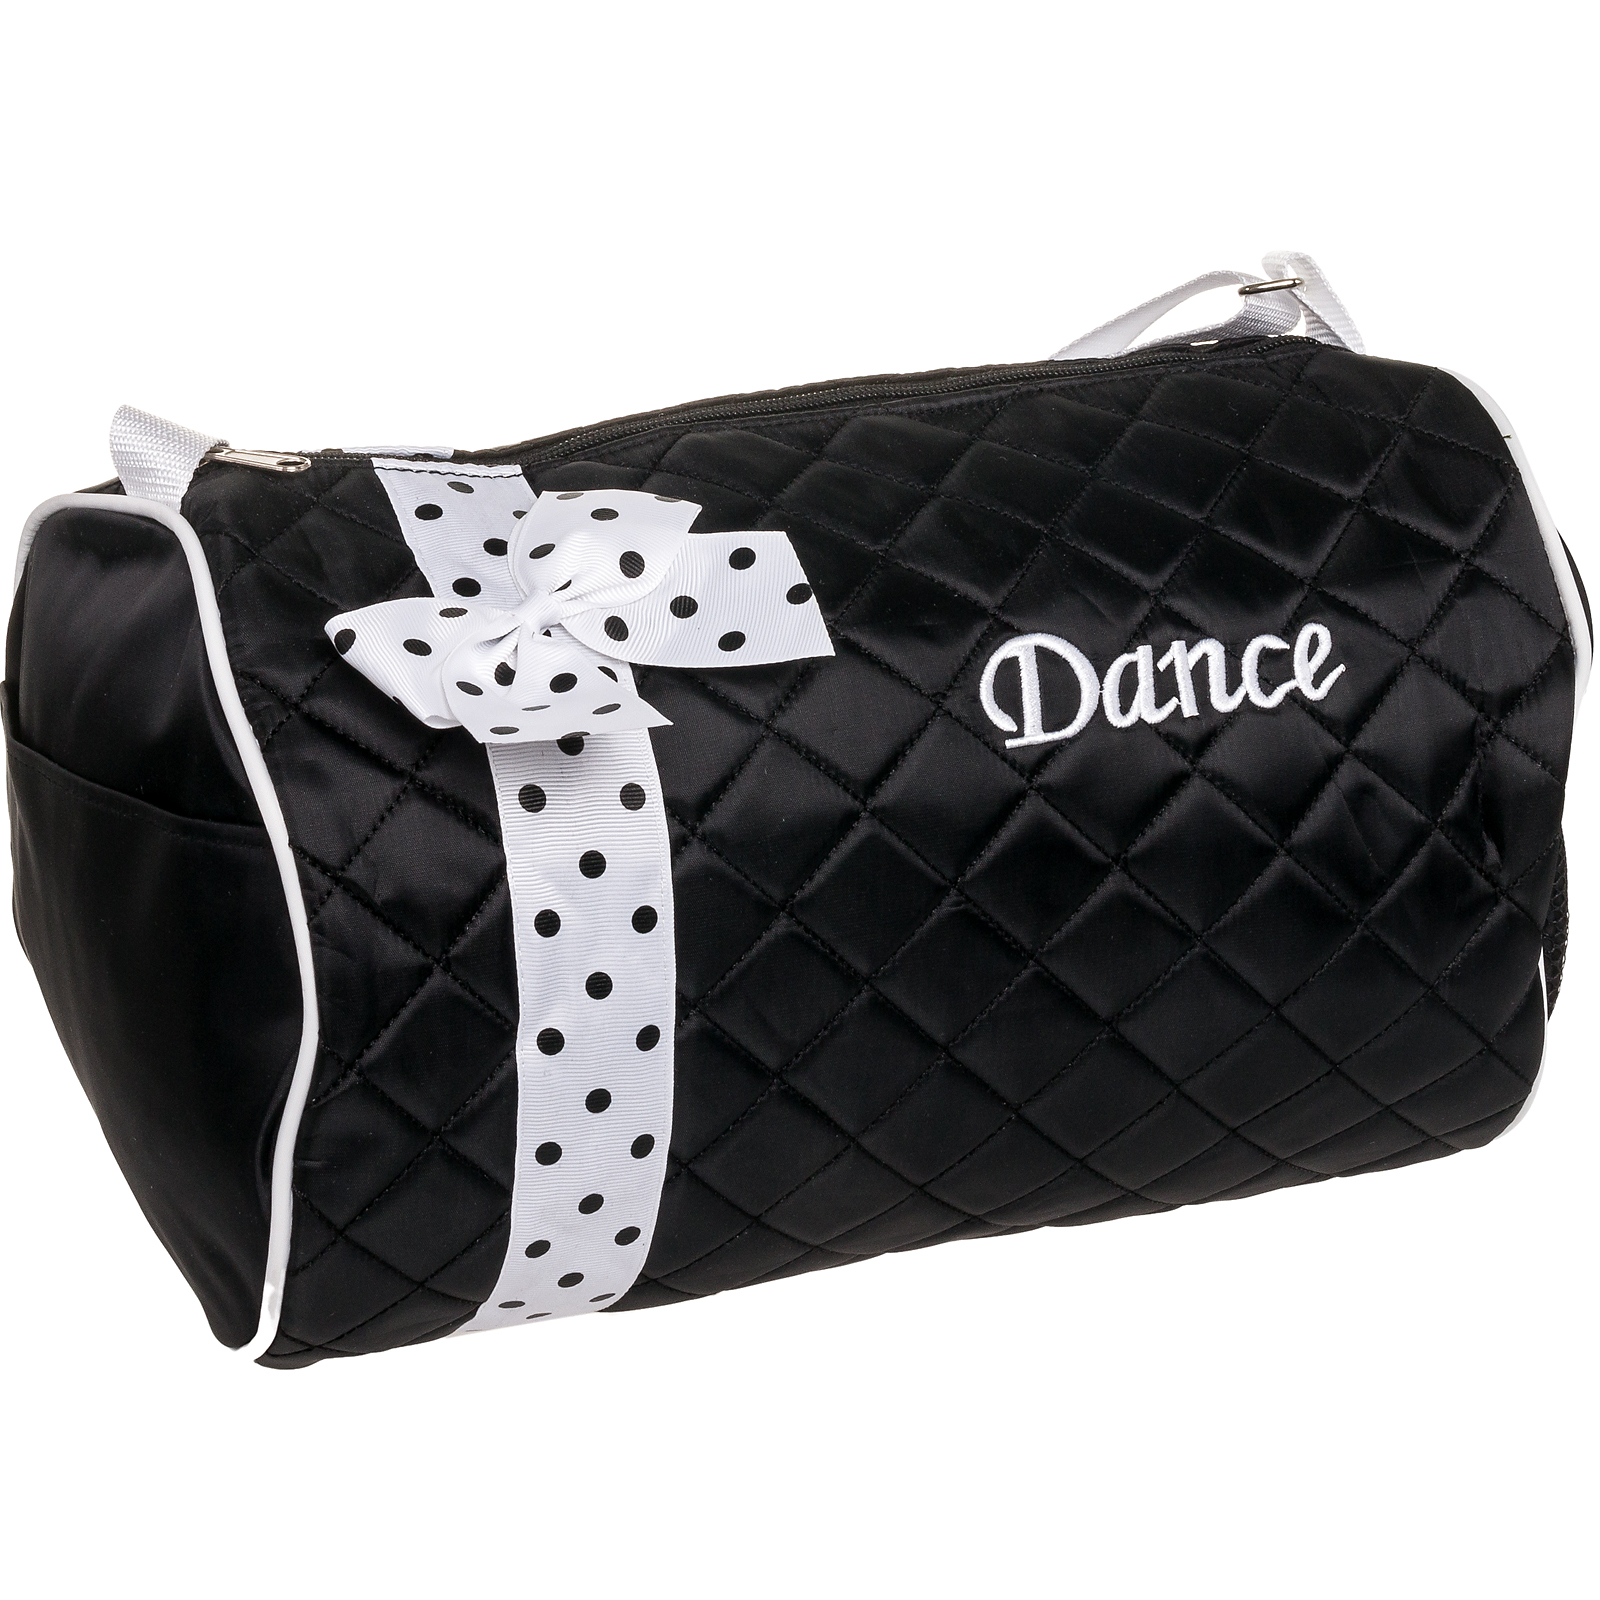 SILVER LILLY NEW Girl Black Dance Cheer Ballet Duffel Duffle Bag w/Polka Dot Bow